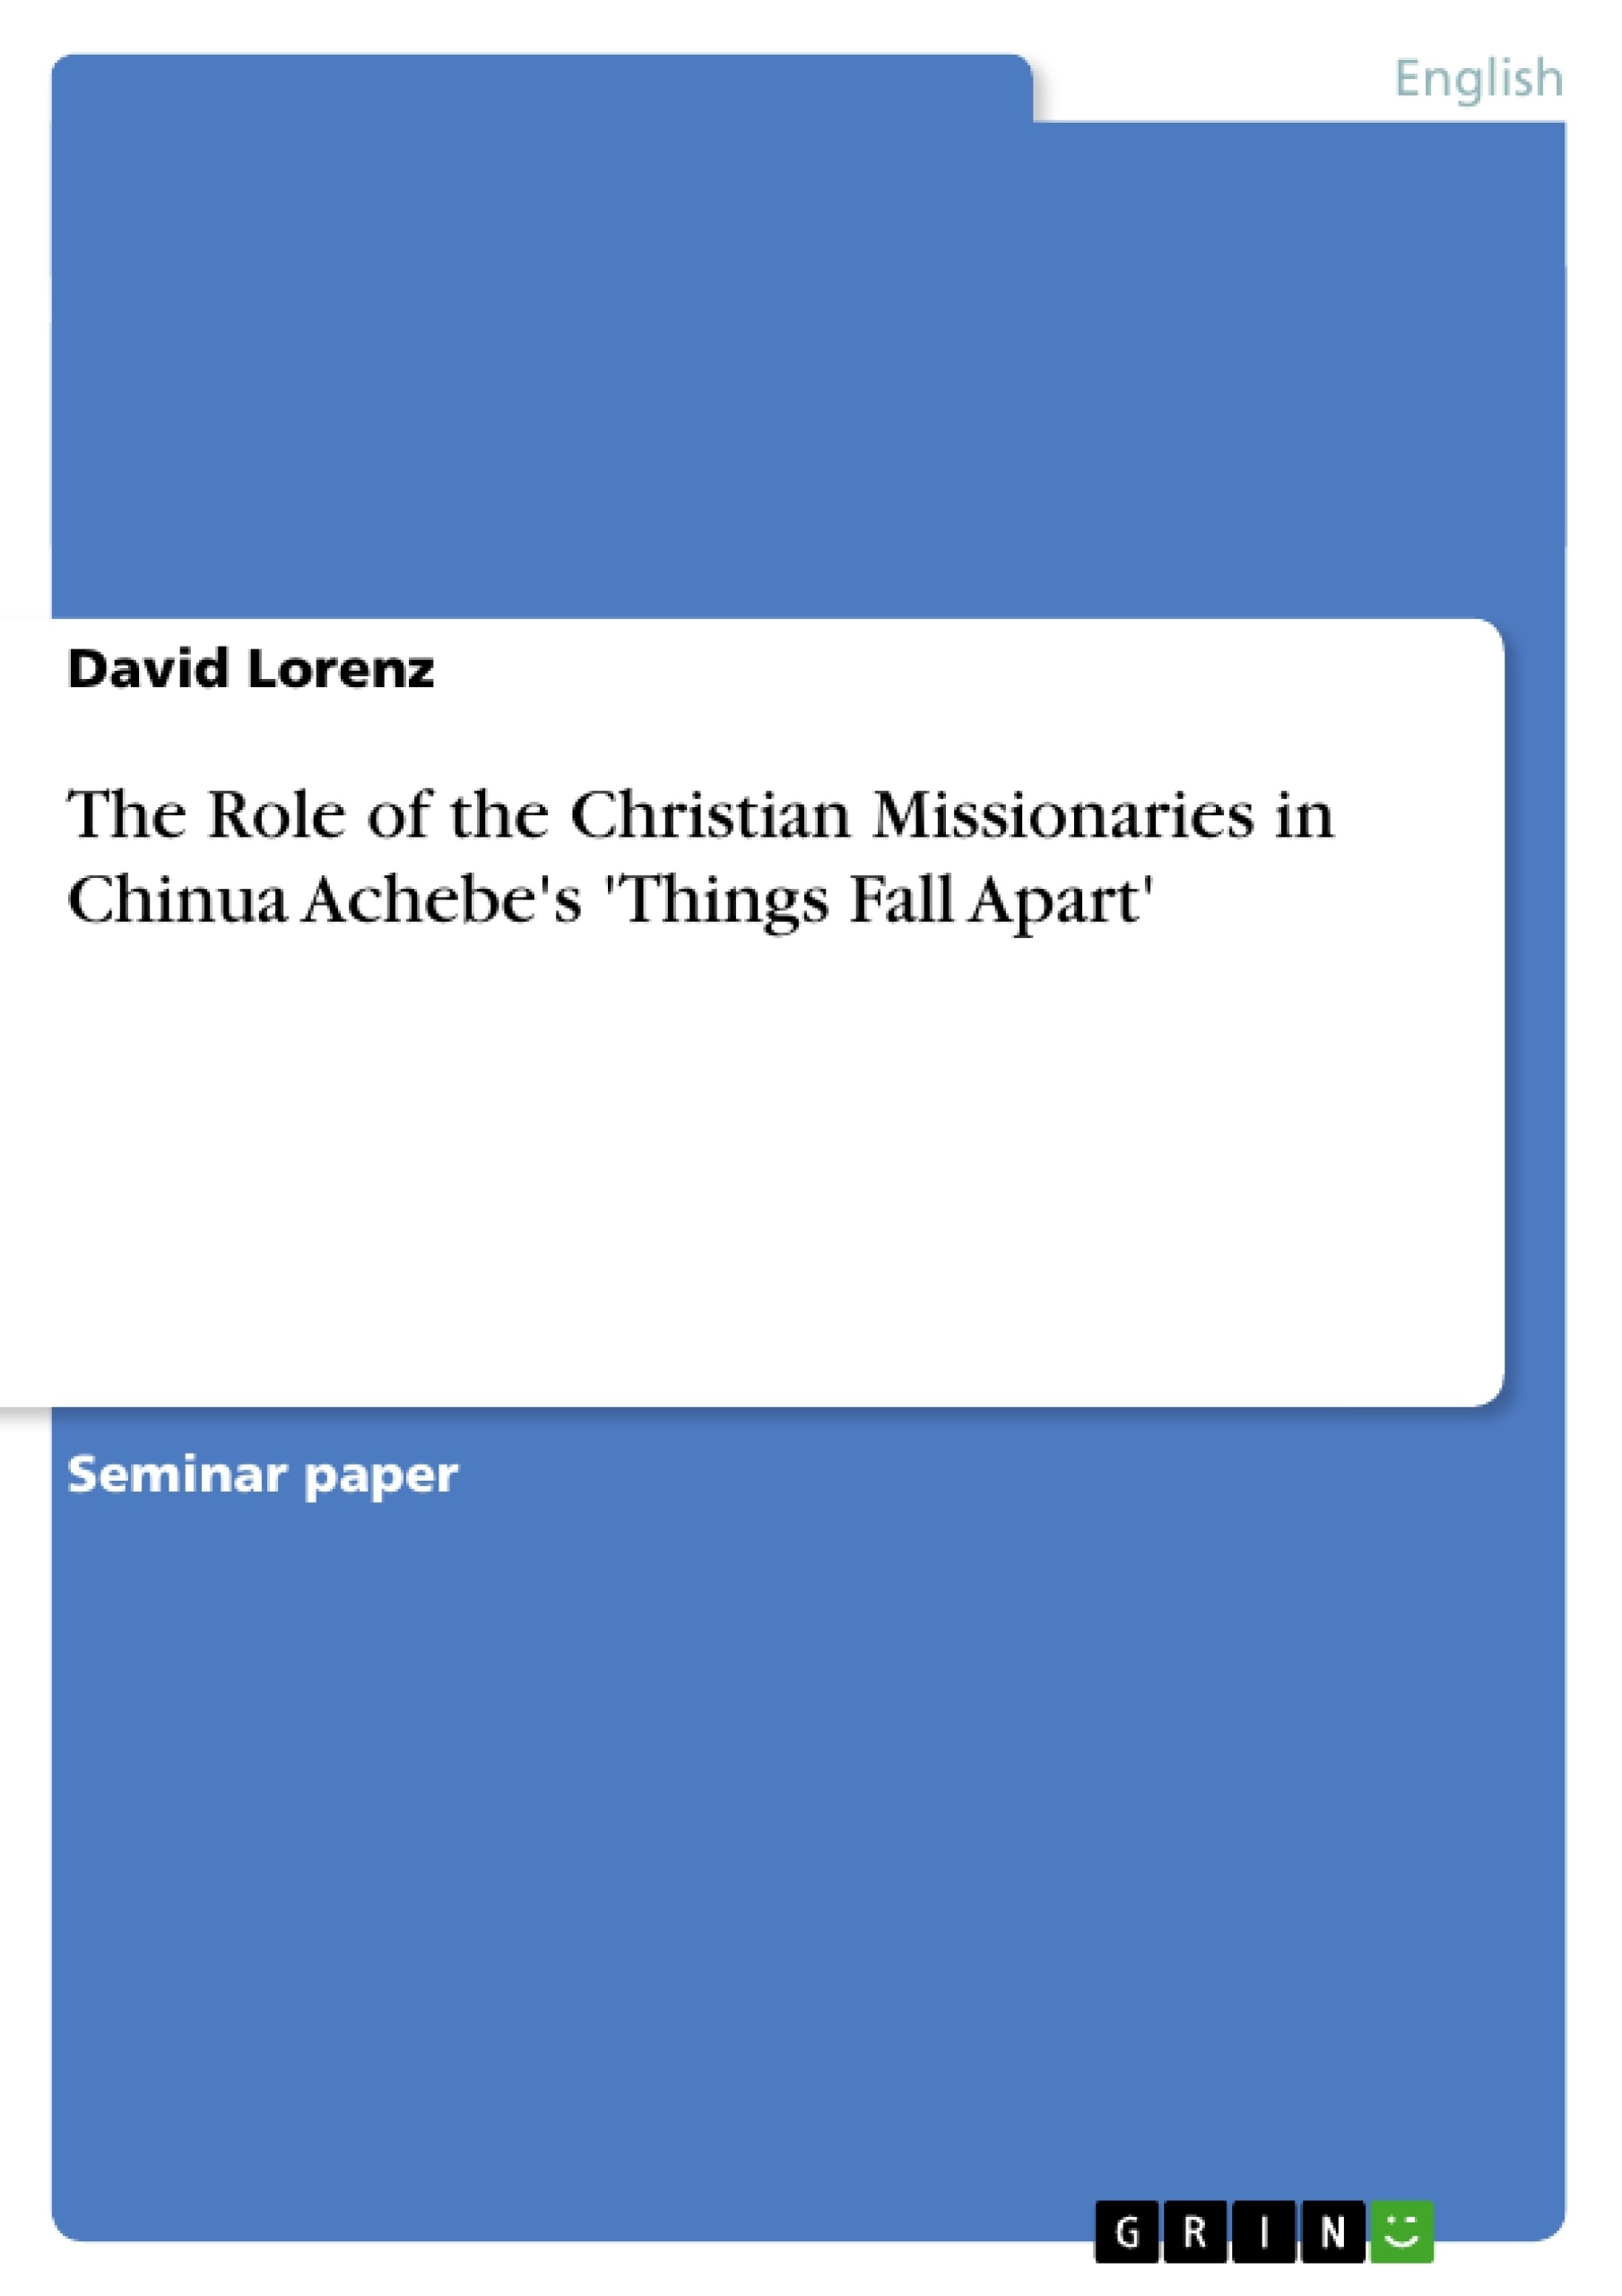 the role of the christian missionaries in chinua achebe s things the role of the christian missionaries in chinua achebe s things publish your master s thesis bachelor s thesis essay or term paper